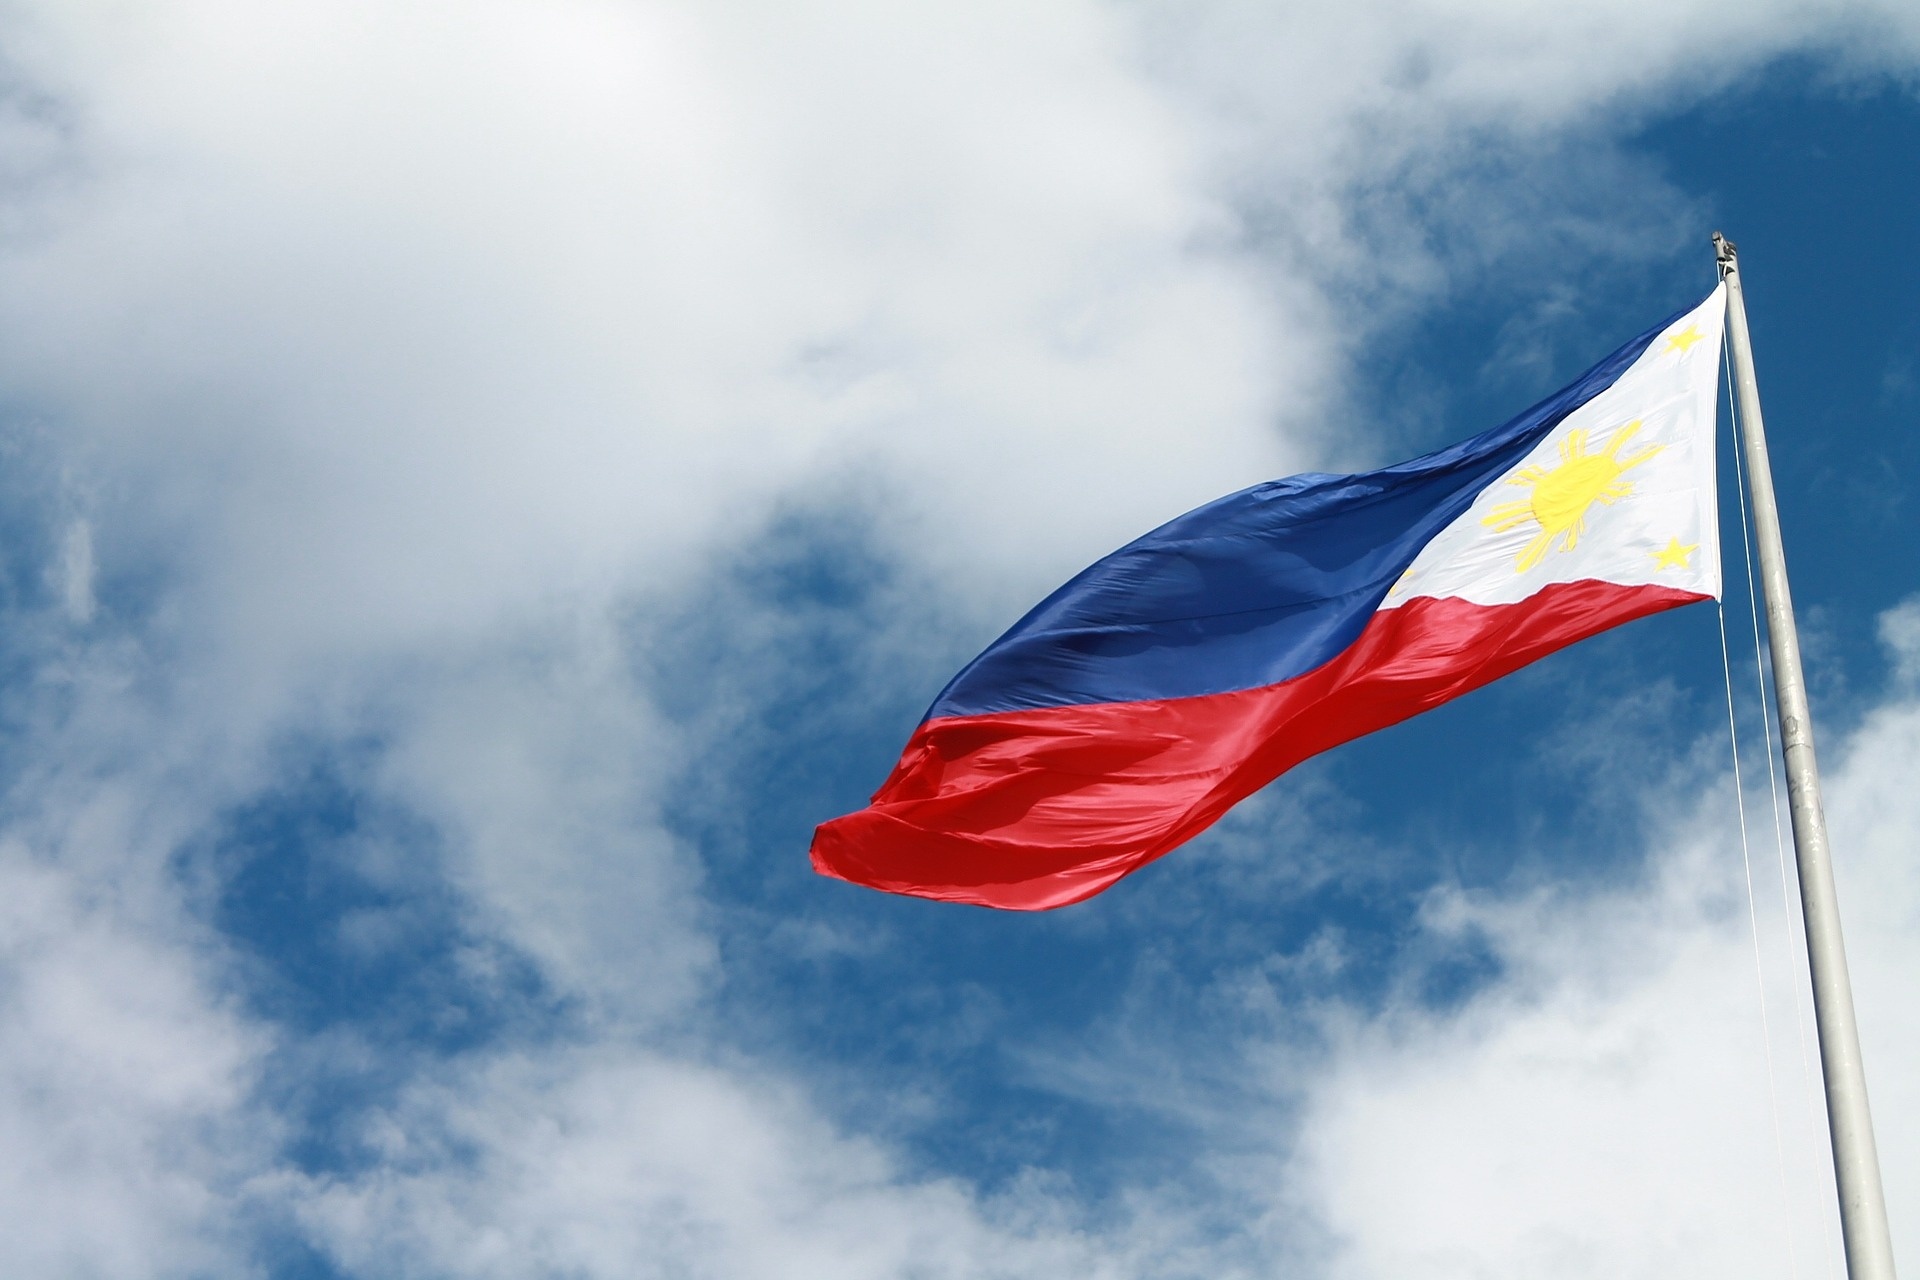 Bring Home A Friend to the Philippines